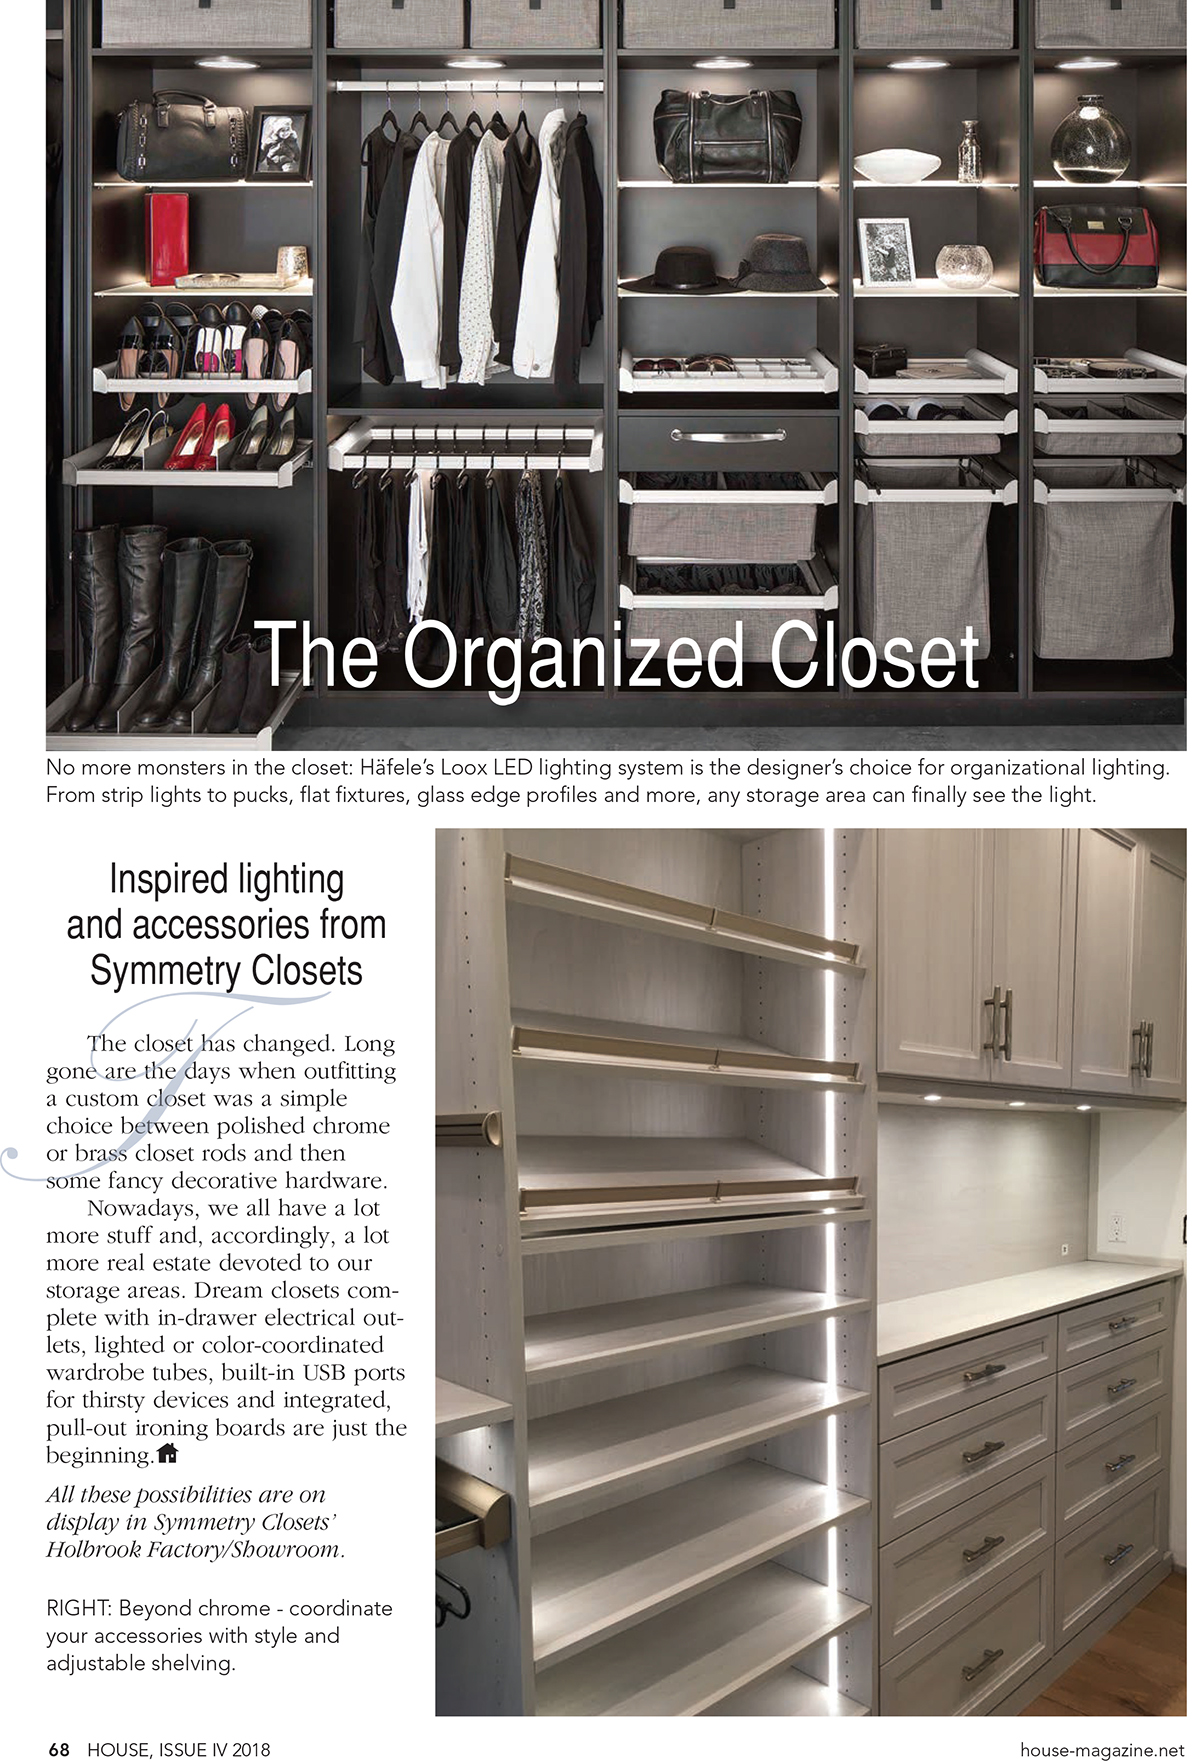 Organized closet, pull out drawers, custom closet, hangers, red shoes, custom lighting, custom built-in, organization, hamper, pull out hamper, boots, fashion, shoe shelving, strip lights